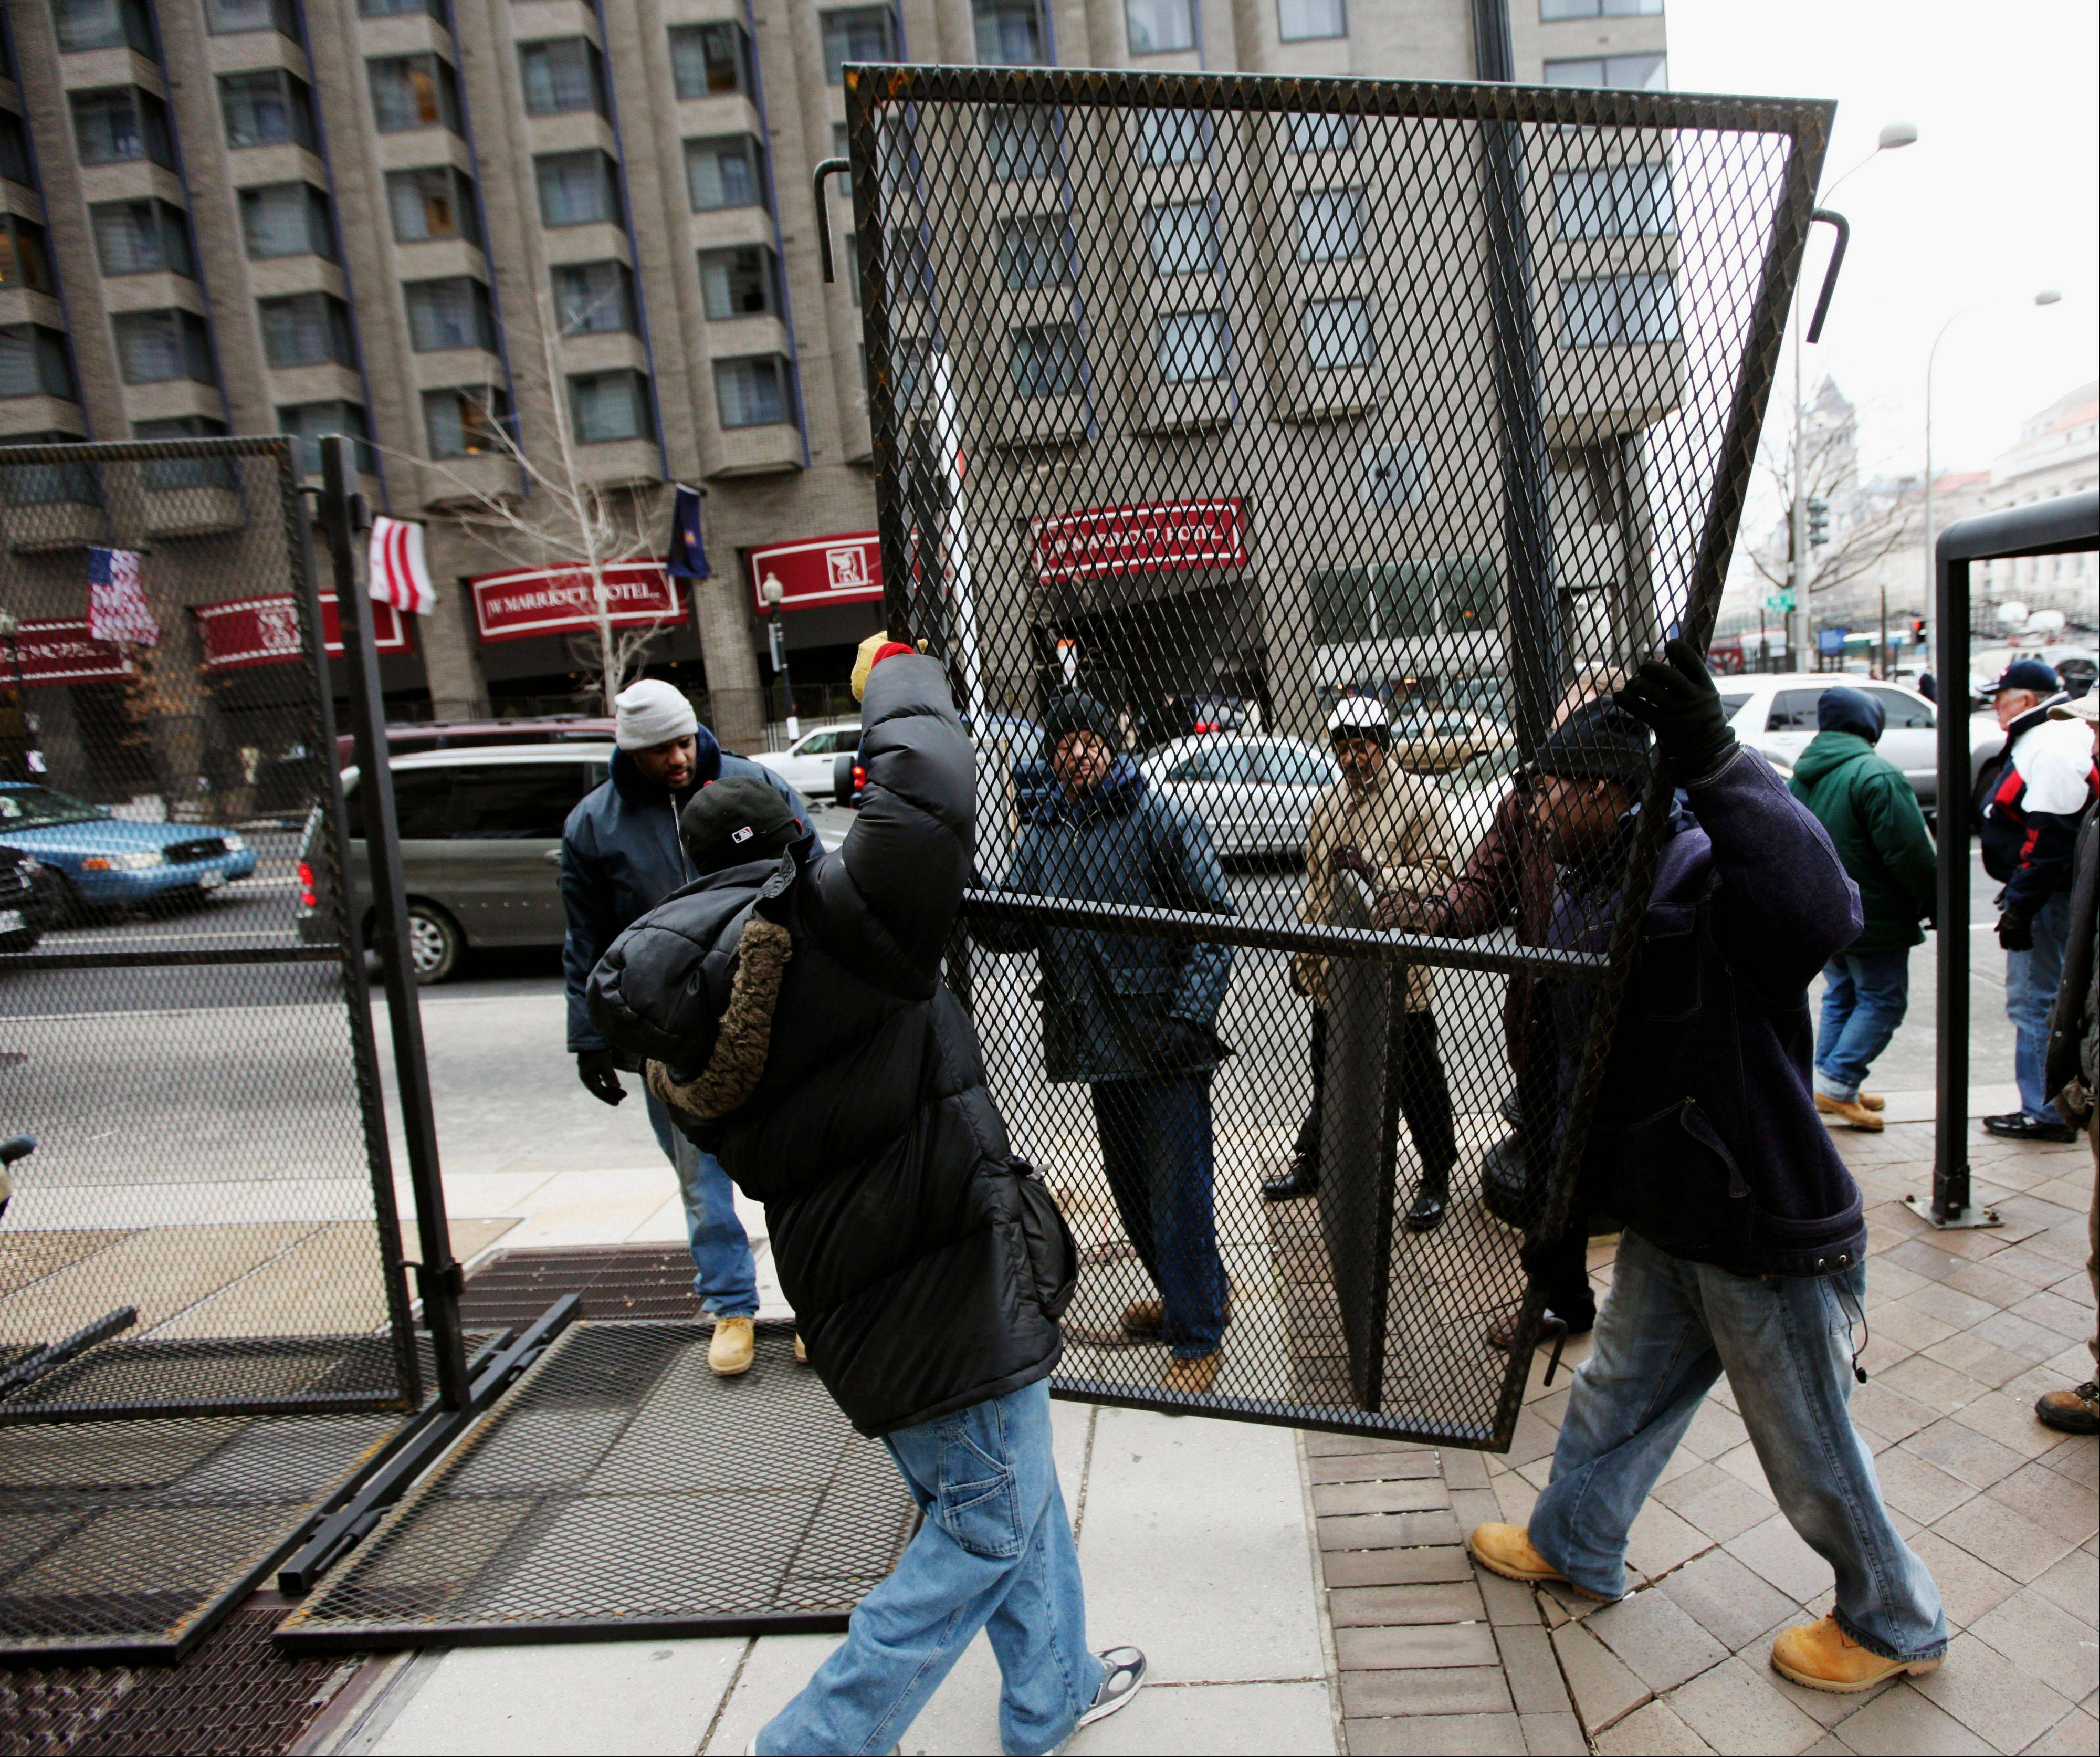 Associated Press/Jan. 18, 2009 Workers install security barricades near Pennsylvania Ave. in Washington before President Obama�s first inauguration. Obama�s second inauguration figures to be significantly smaller than the record-breaking turnout of 2009.